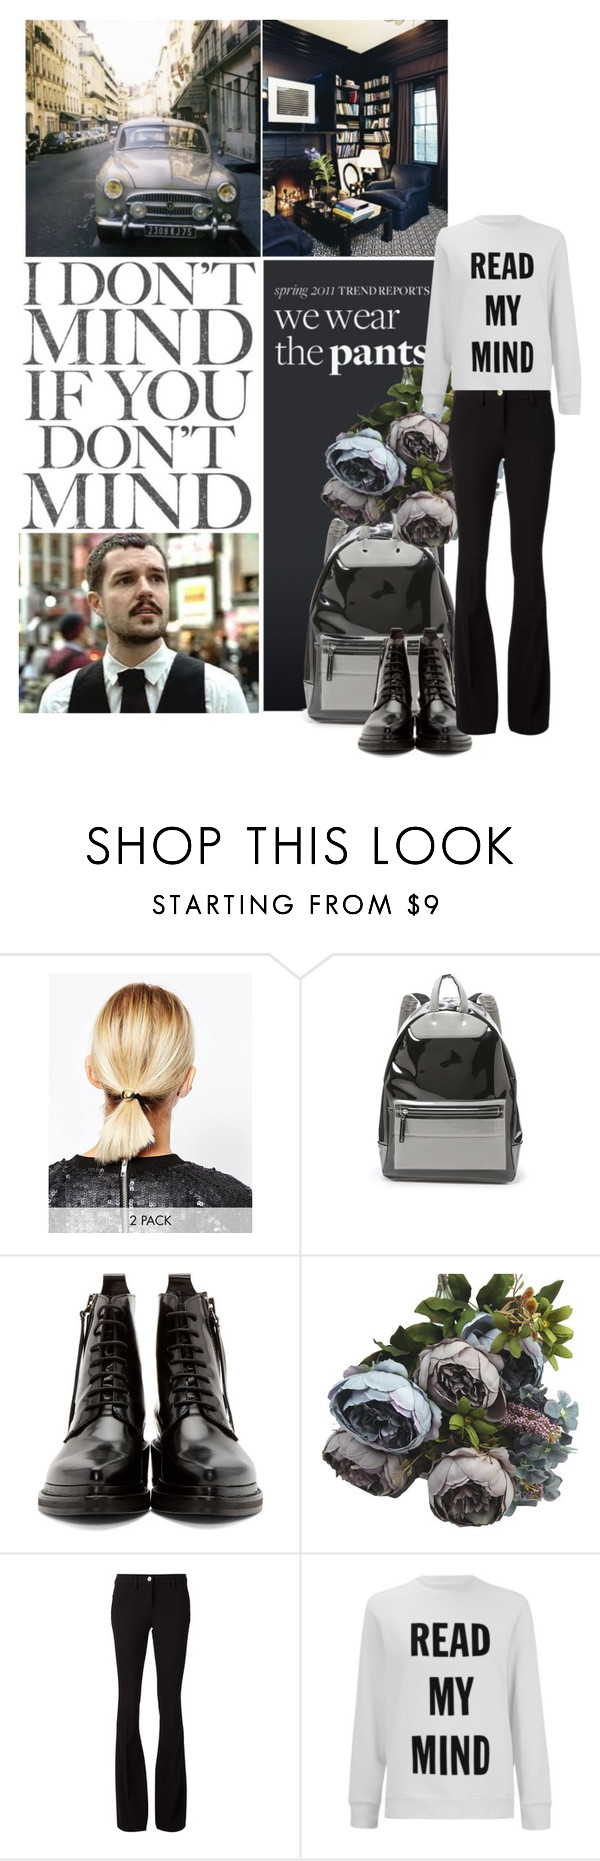 """Brandon Flowers"" by tasa92 ❤ liked on Polyvore featuring ASOS, Maison Margiela, Acne Studios, Philipp Plein, Wood Wood, thekillers, singer and brandonflowers"